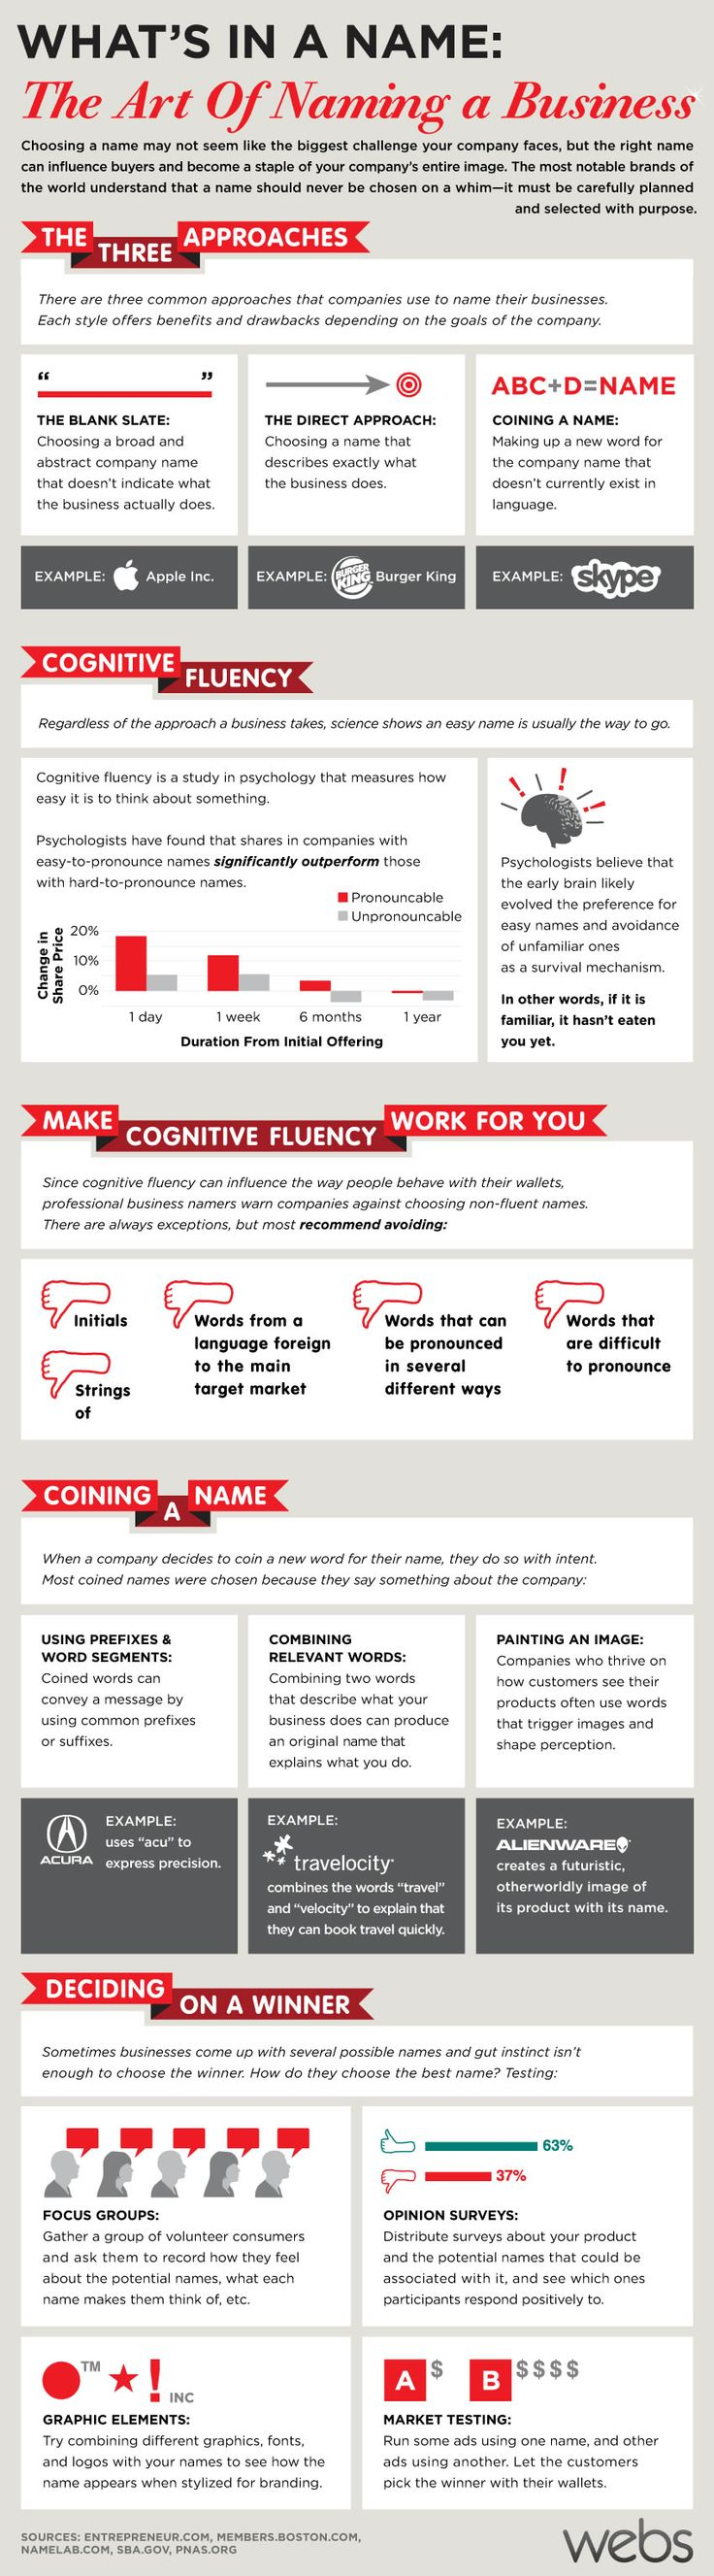 The Art Of Naming A Business [Infographic]